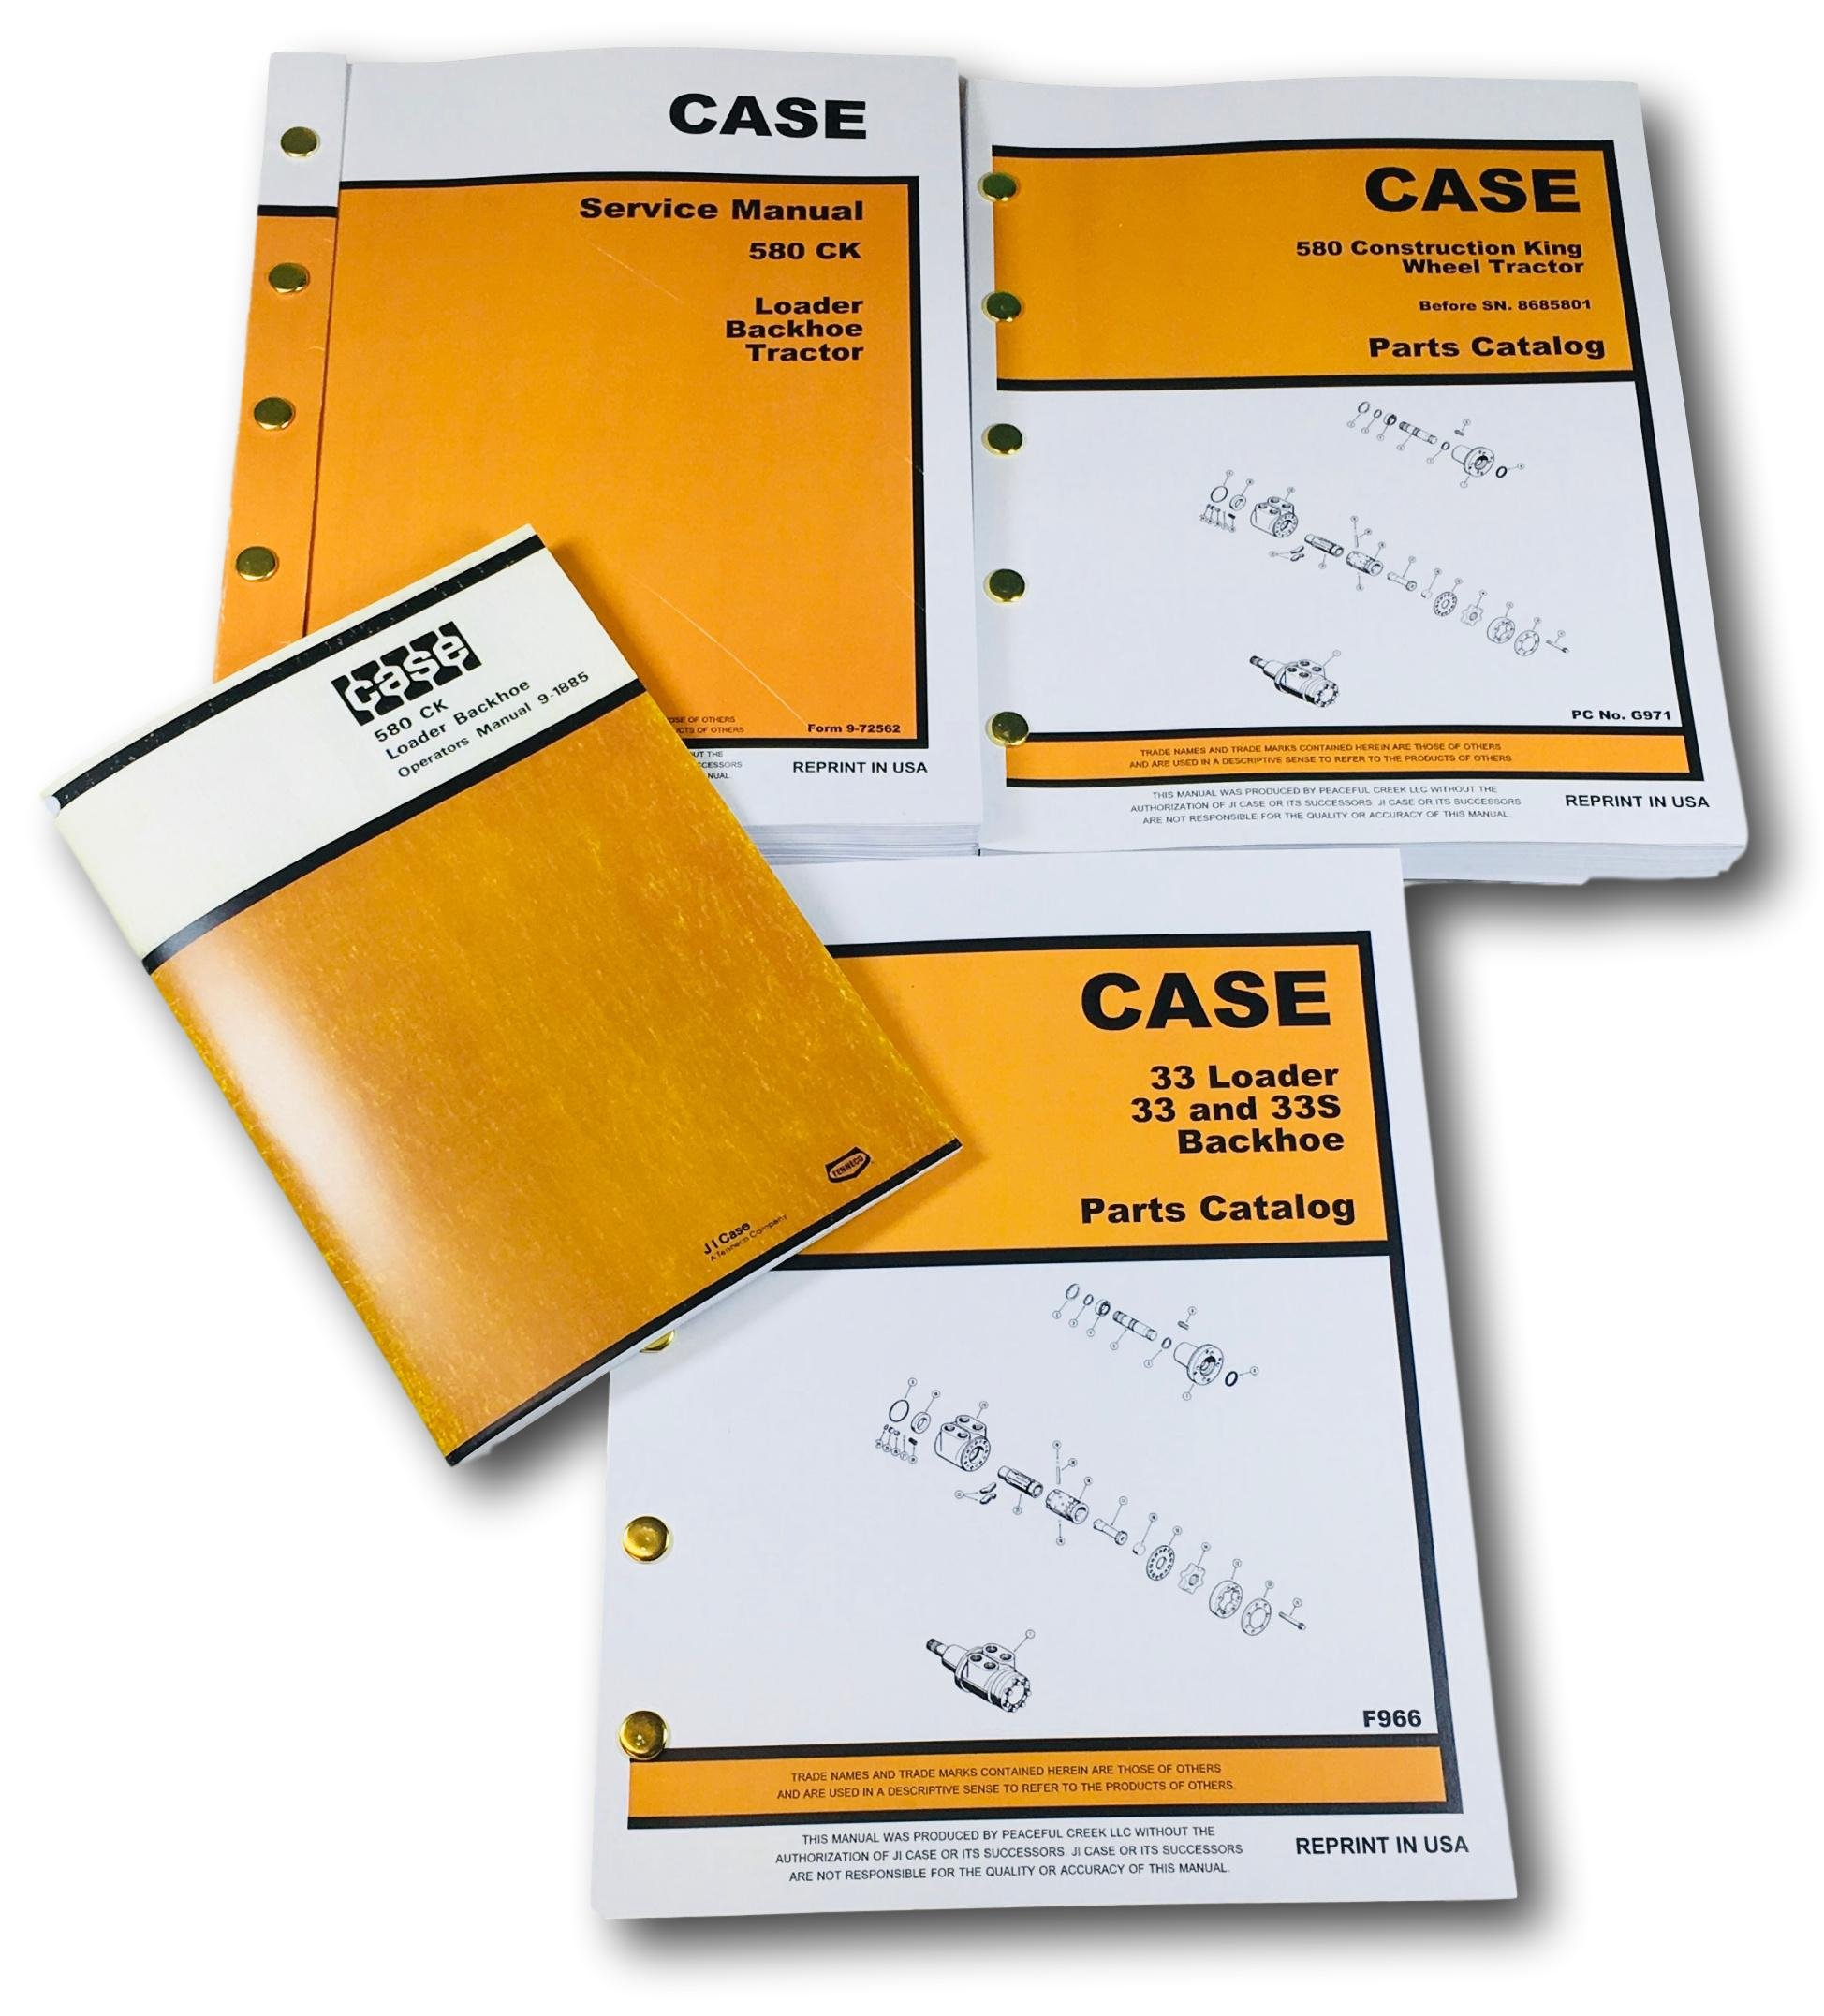 case 580 amazon comcase 580 ck tractor loader backhoe service, parts and operators manual set serial numbers up